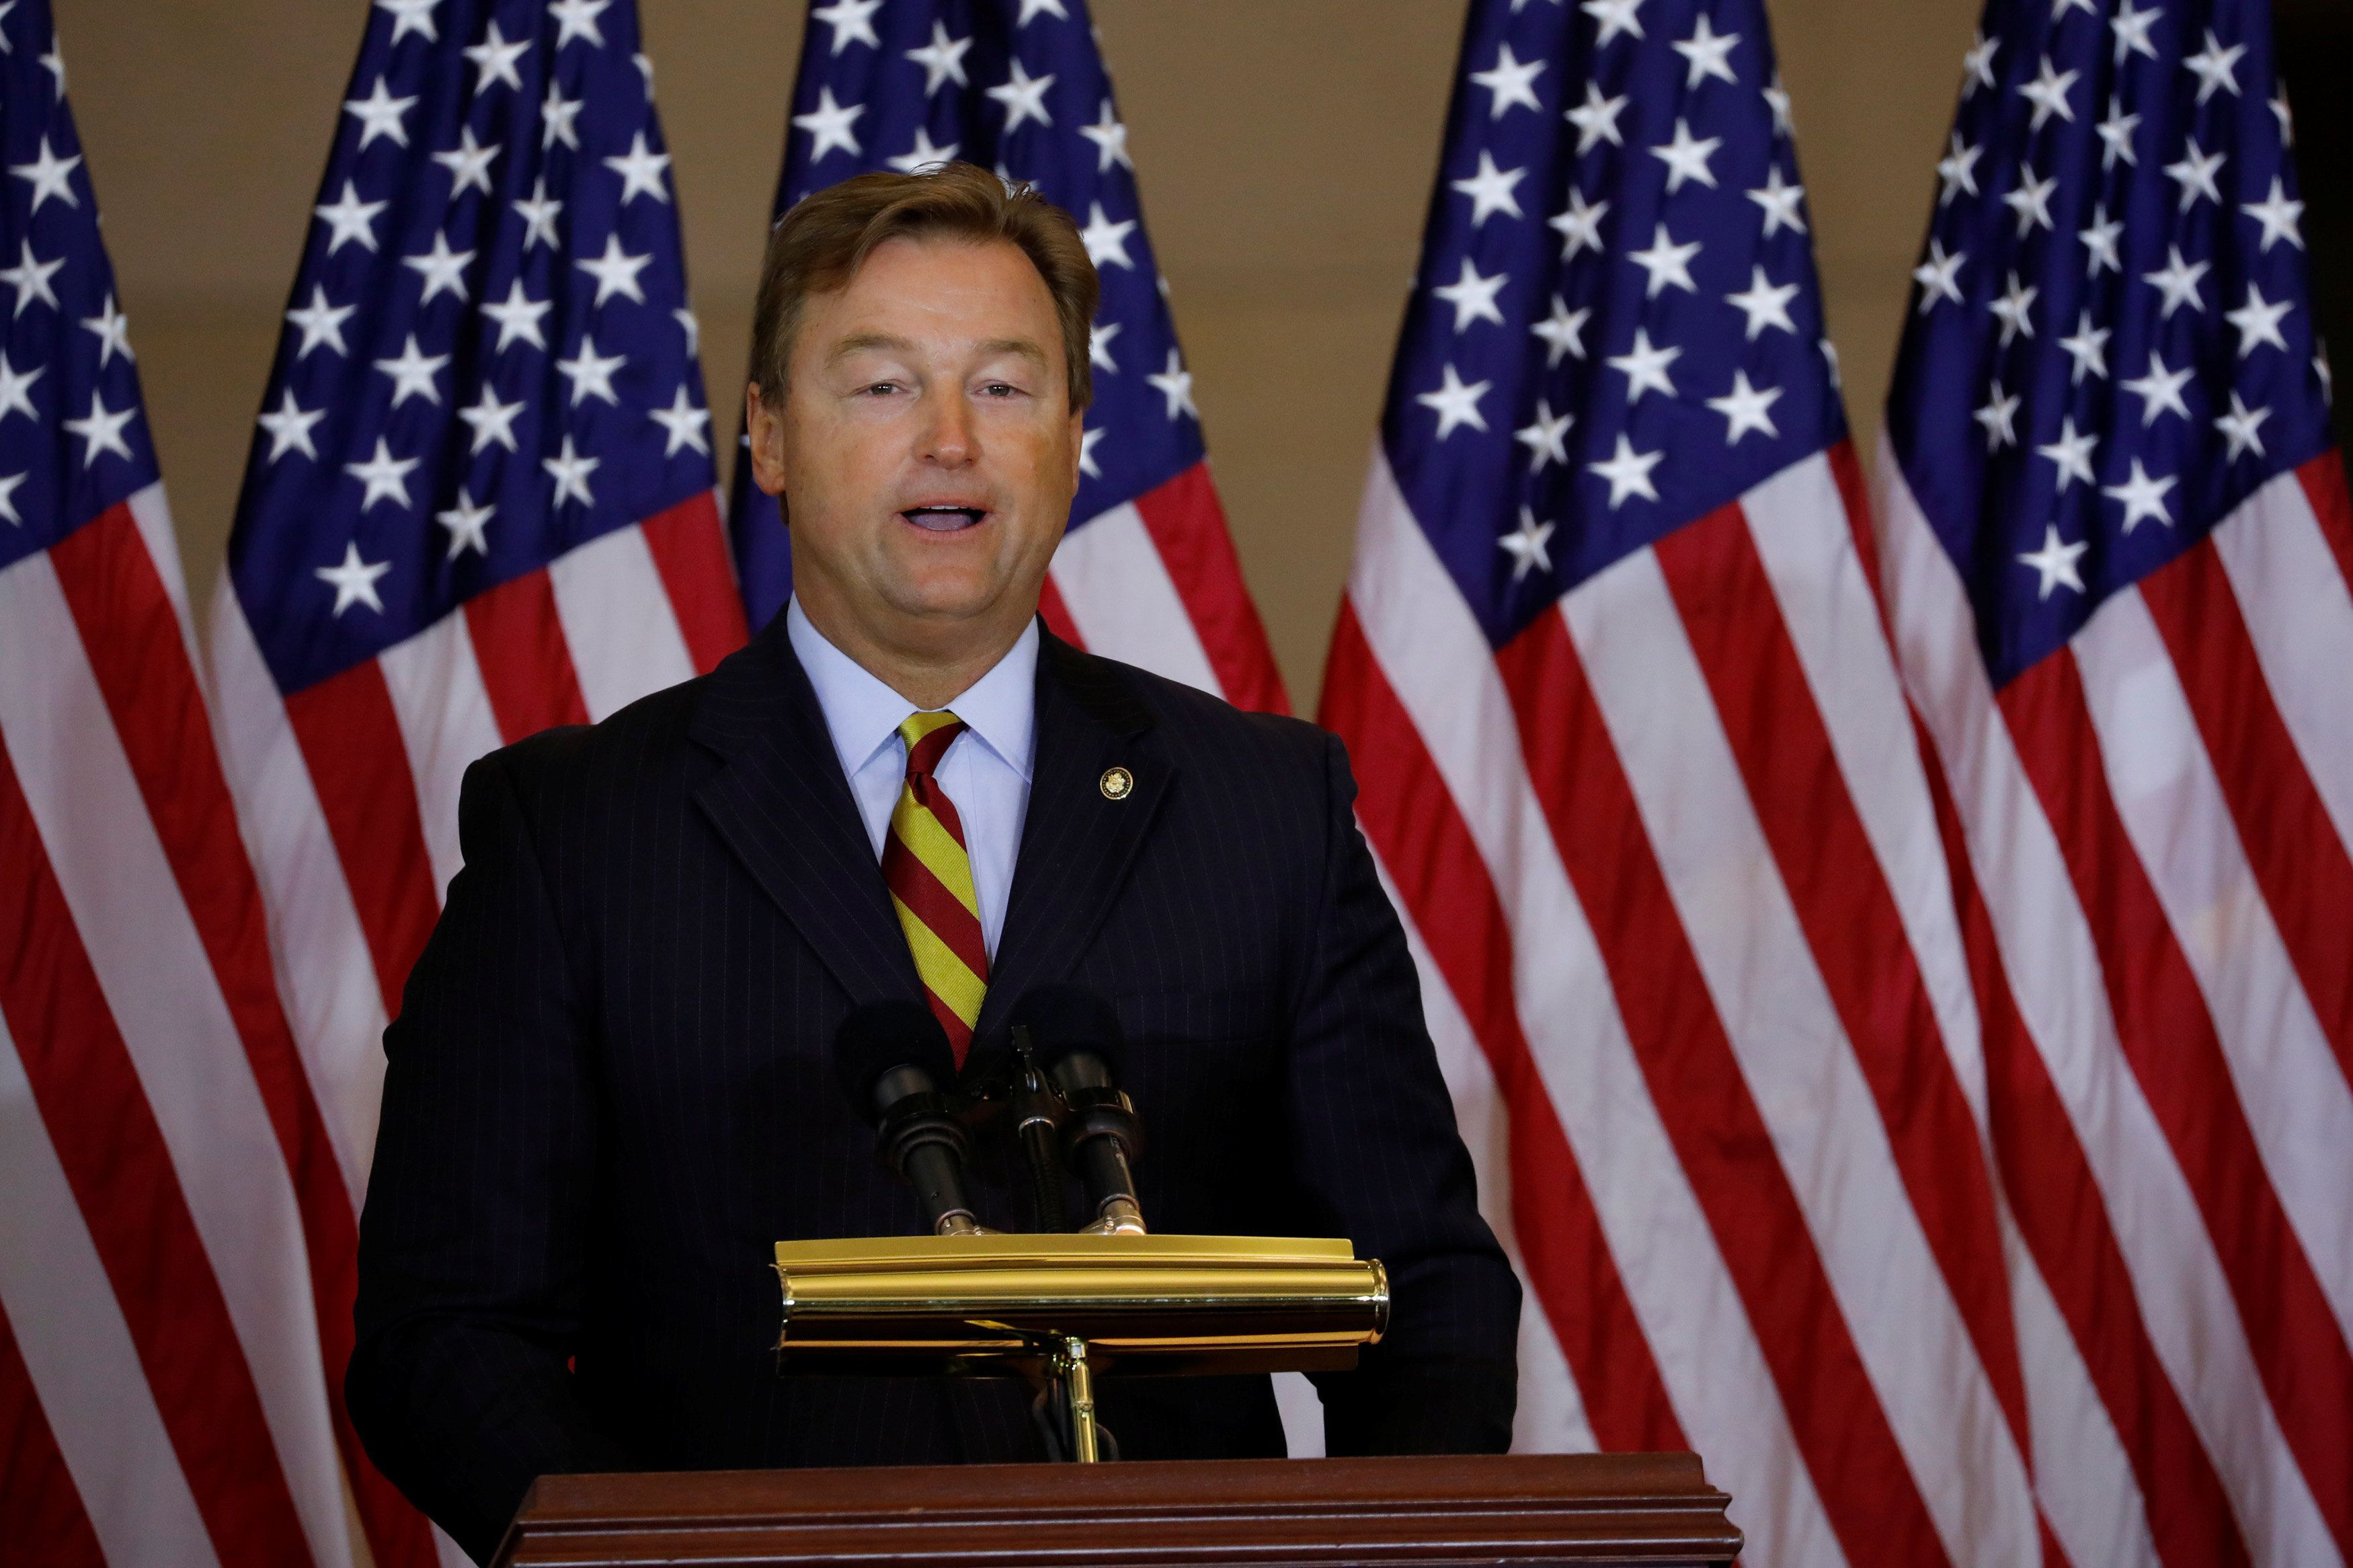 Sen. Dean Heller (R-NV) speaks during a ceremony to present the Congressional Gold Medal to Filipino veterans of the Second World War on Capitol Hill in Washington, U.S., October 25, 2017. REUTERS/Aaron P. Bernstein